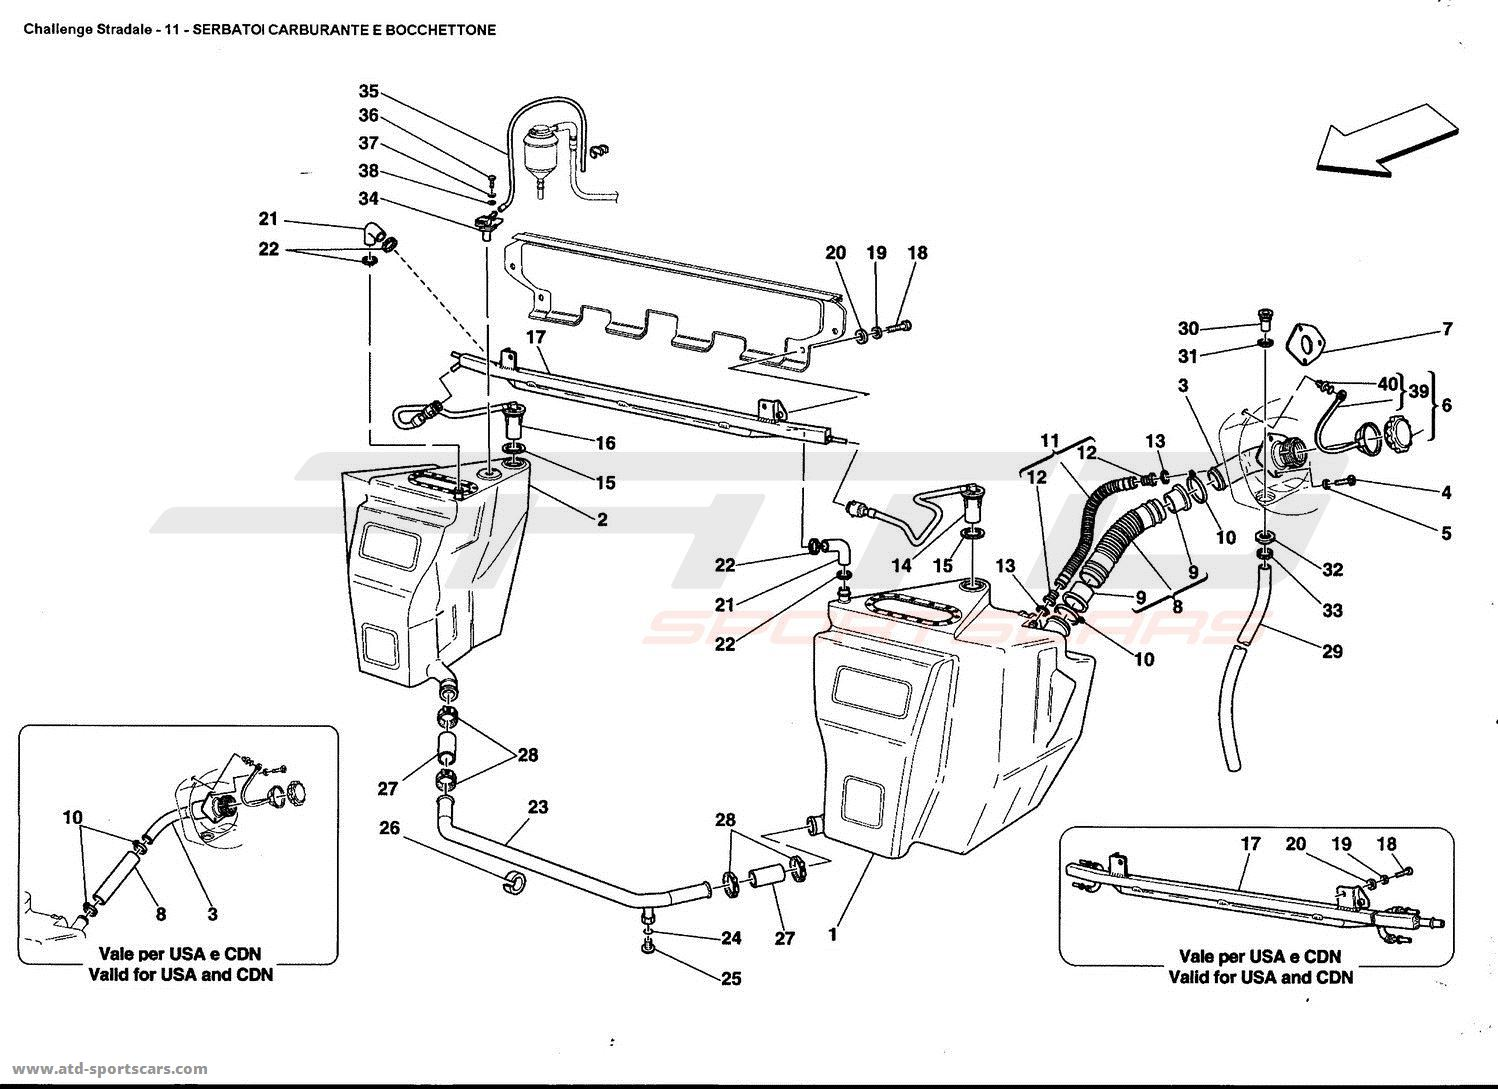 Ferrari 360 Challenge Stradale Air Intake Fuel Parts At Atd Wiring Diagrams 4 Tanks And Union